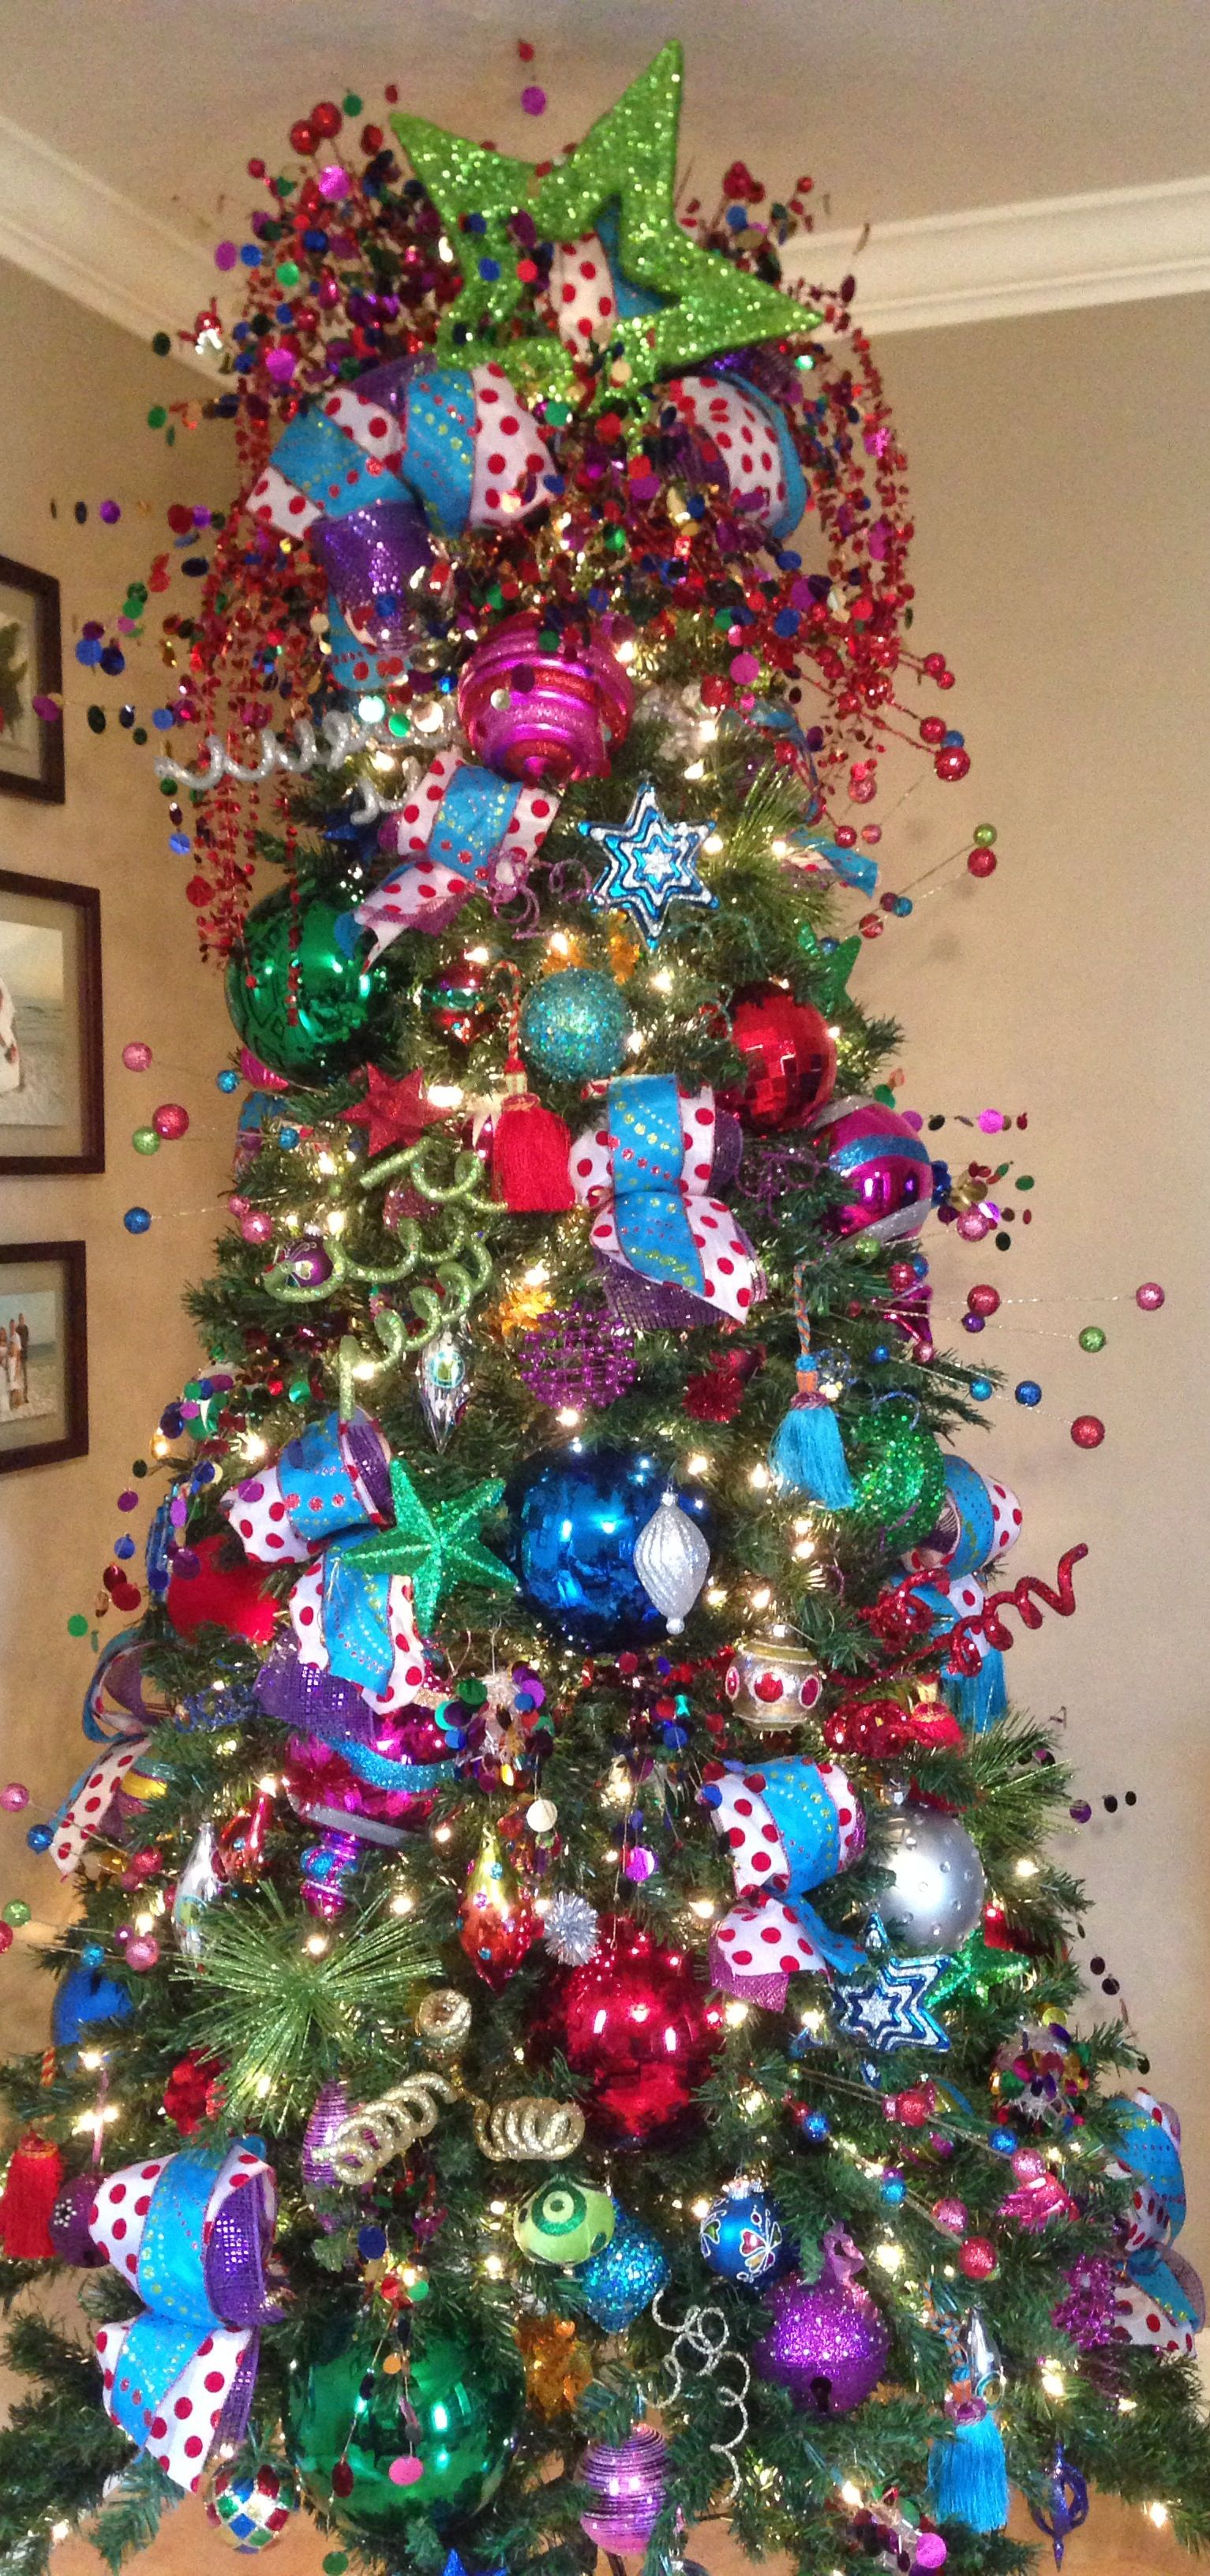 A Pic Of One Of My Christmas Trees Colorful Tree